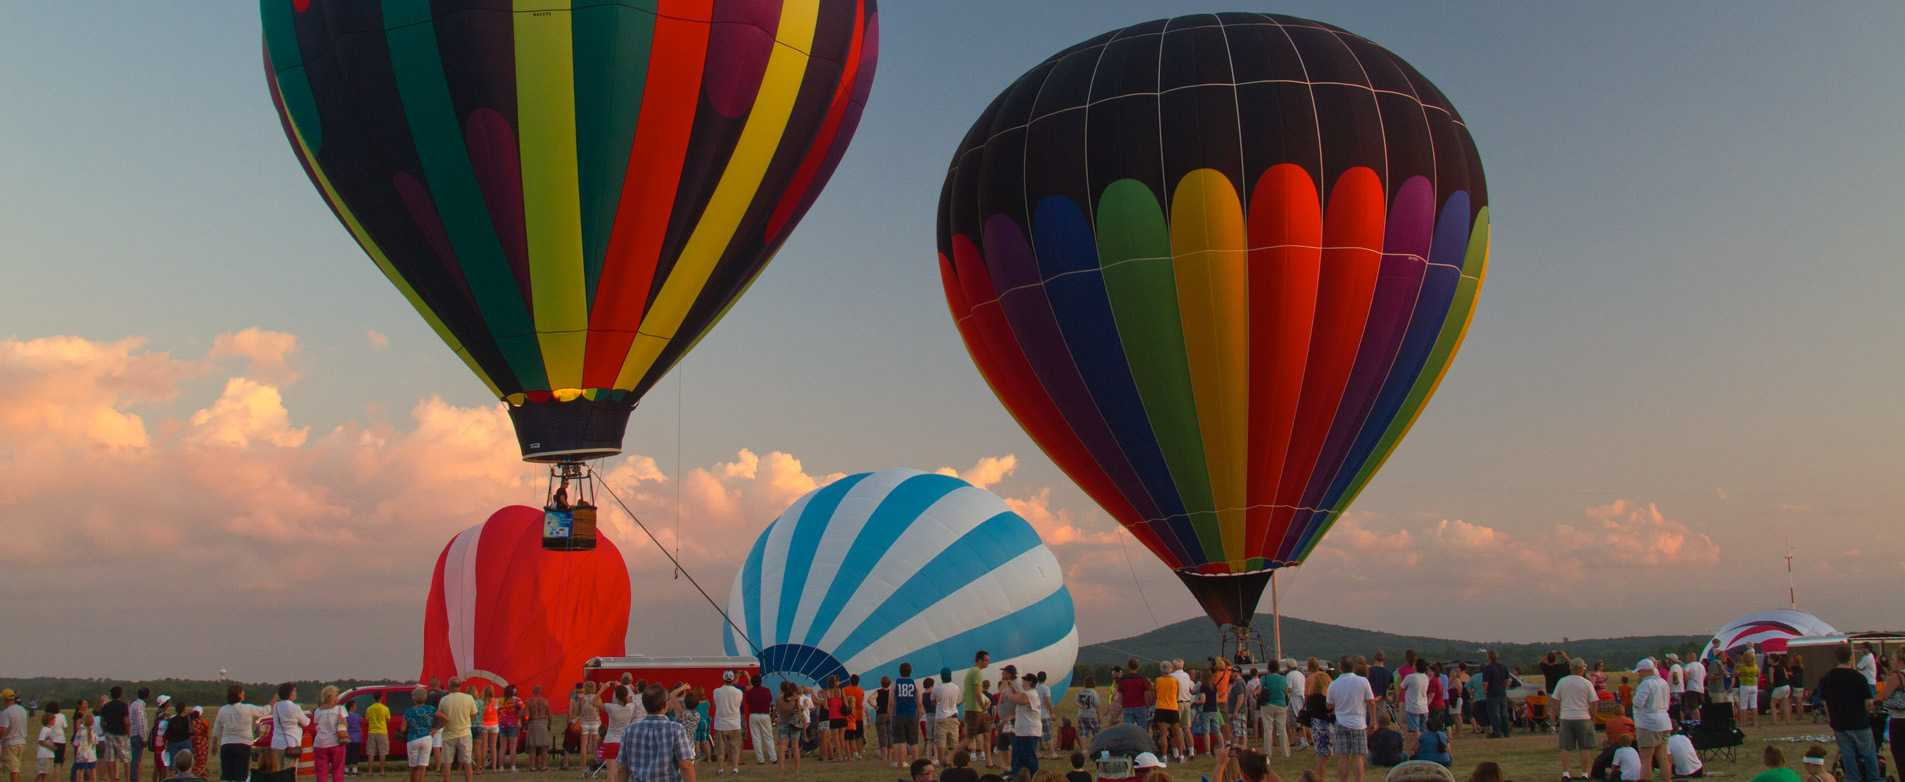 Balloon and Rib Fest - Wausau